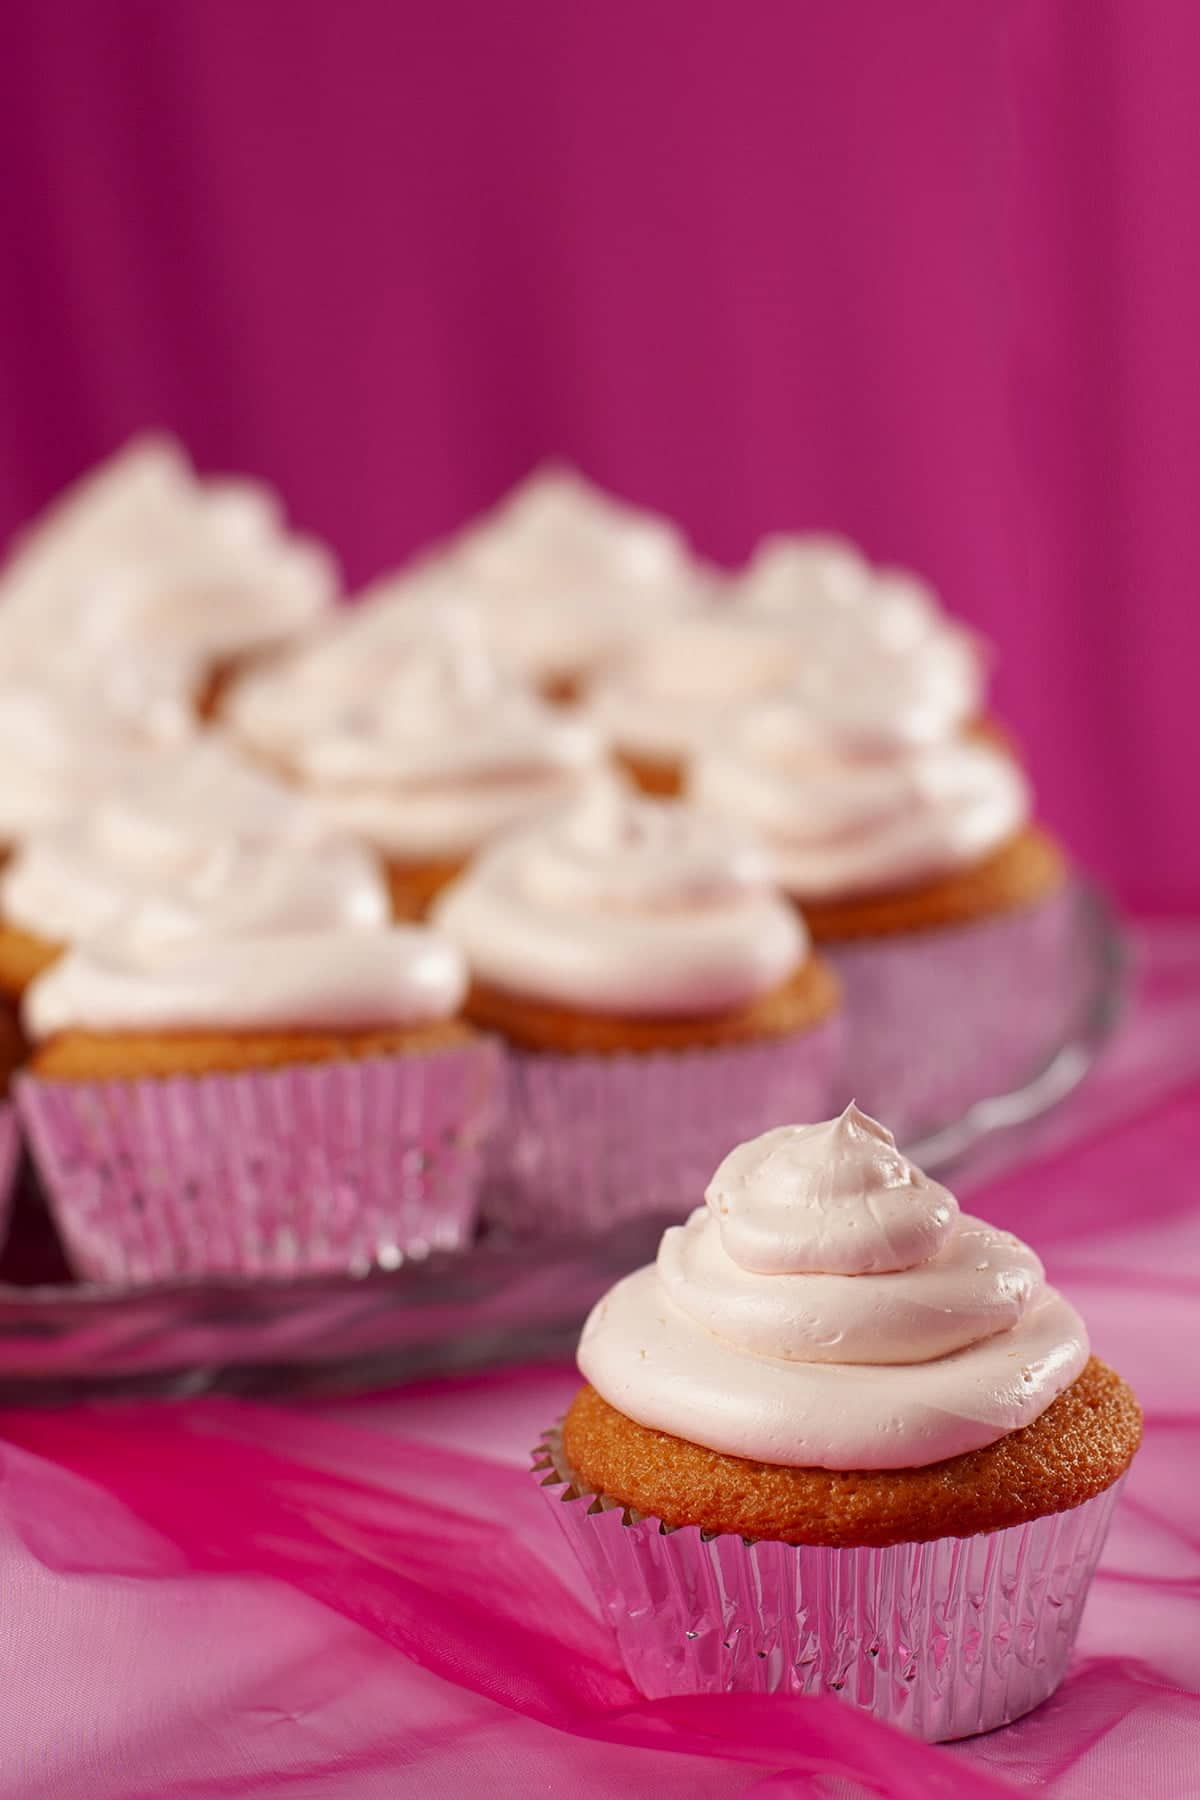 A tray of pink grapefruit daiquiri cupcakes - in silver liners, topped with pink frosting.